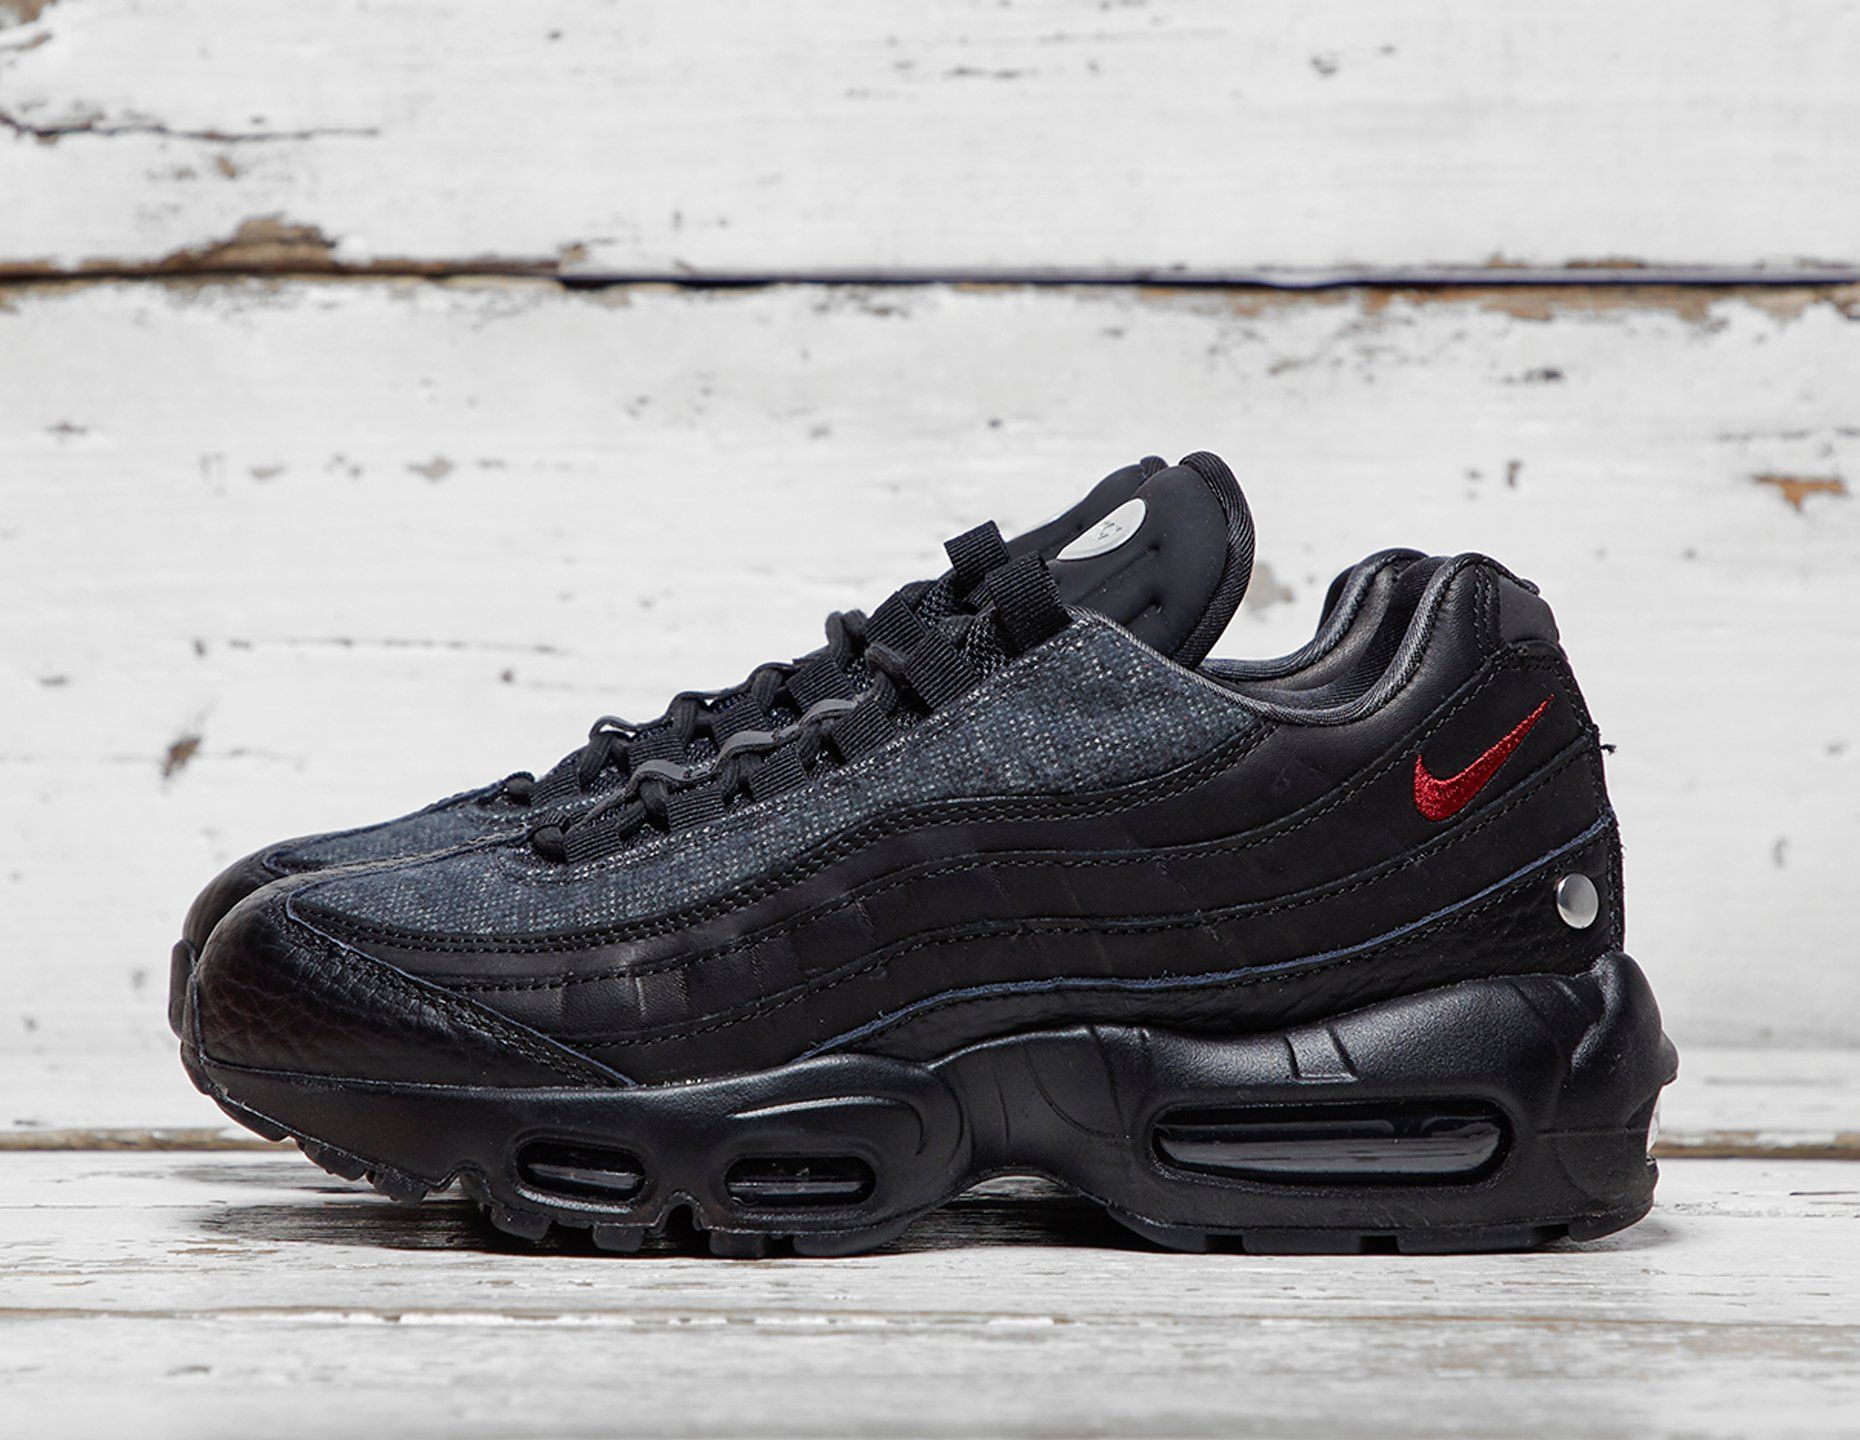 Nike Air Max 95 'Jacket Pack' Women's